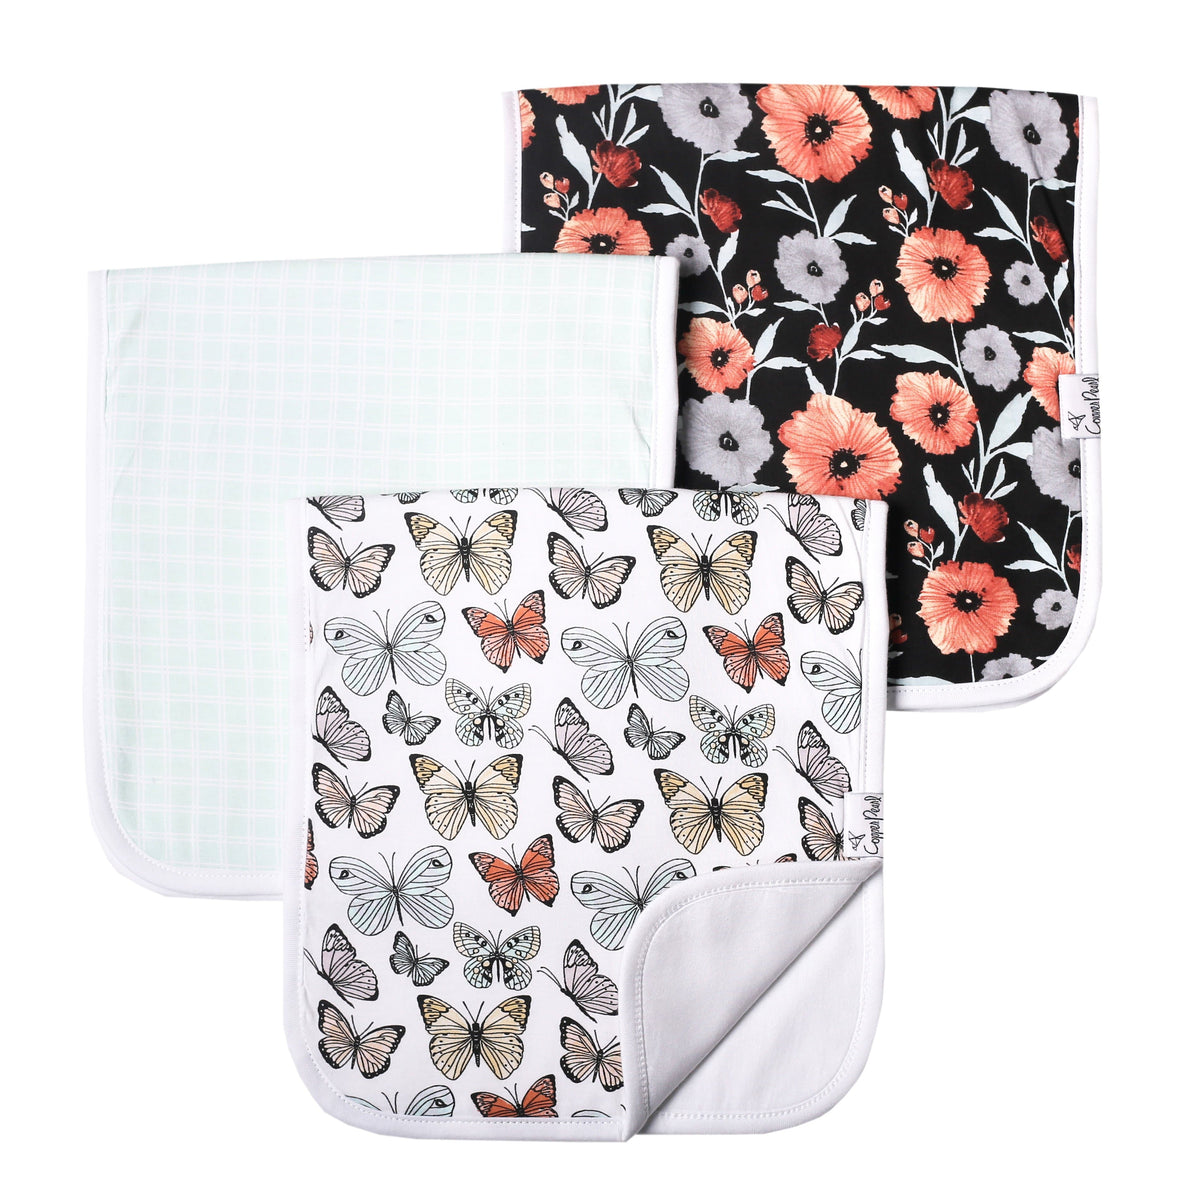 Copper Pearl Burp Cloth Set - 3 pack - Dot